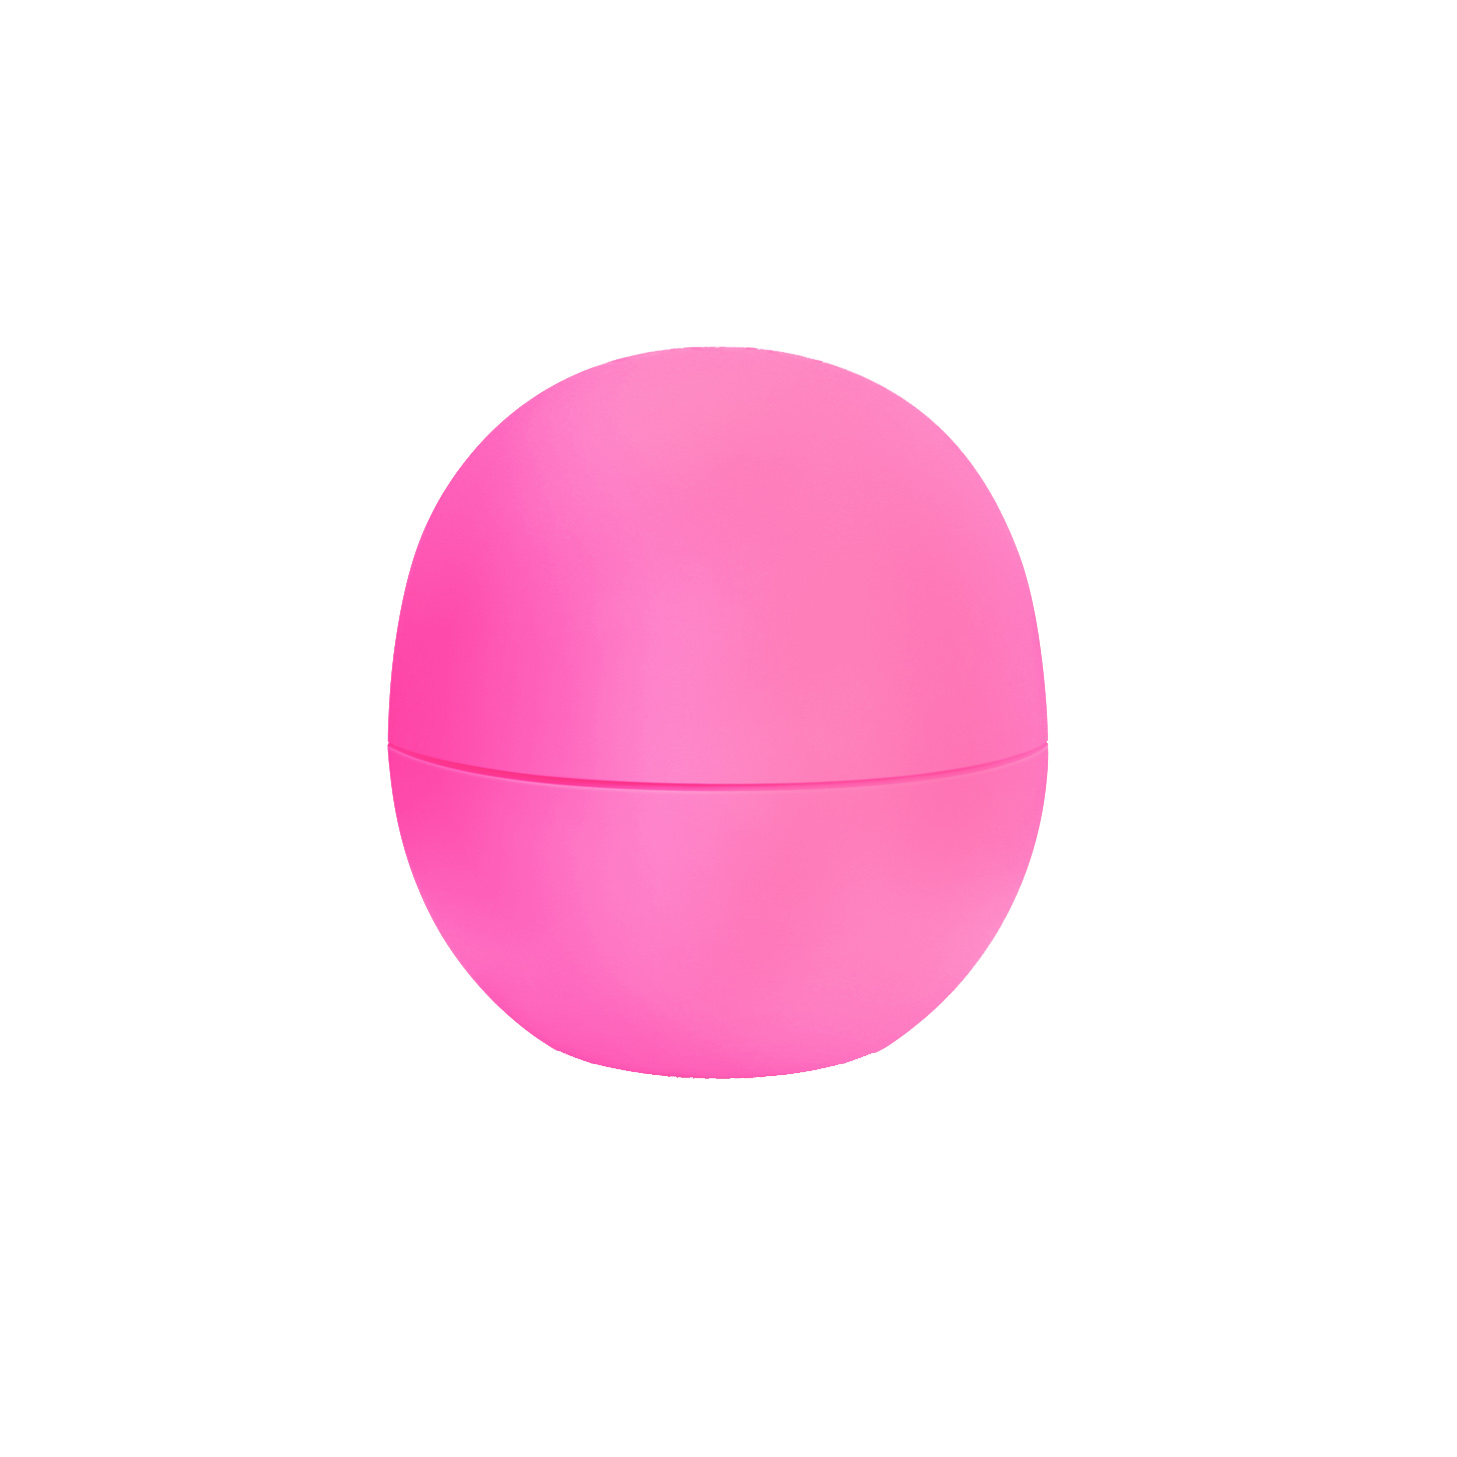 Strawberry Sorbet (Pink Sphere) image